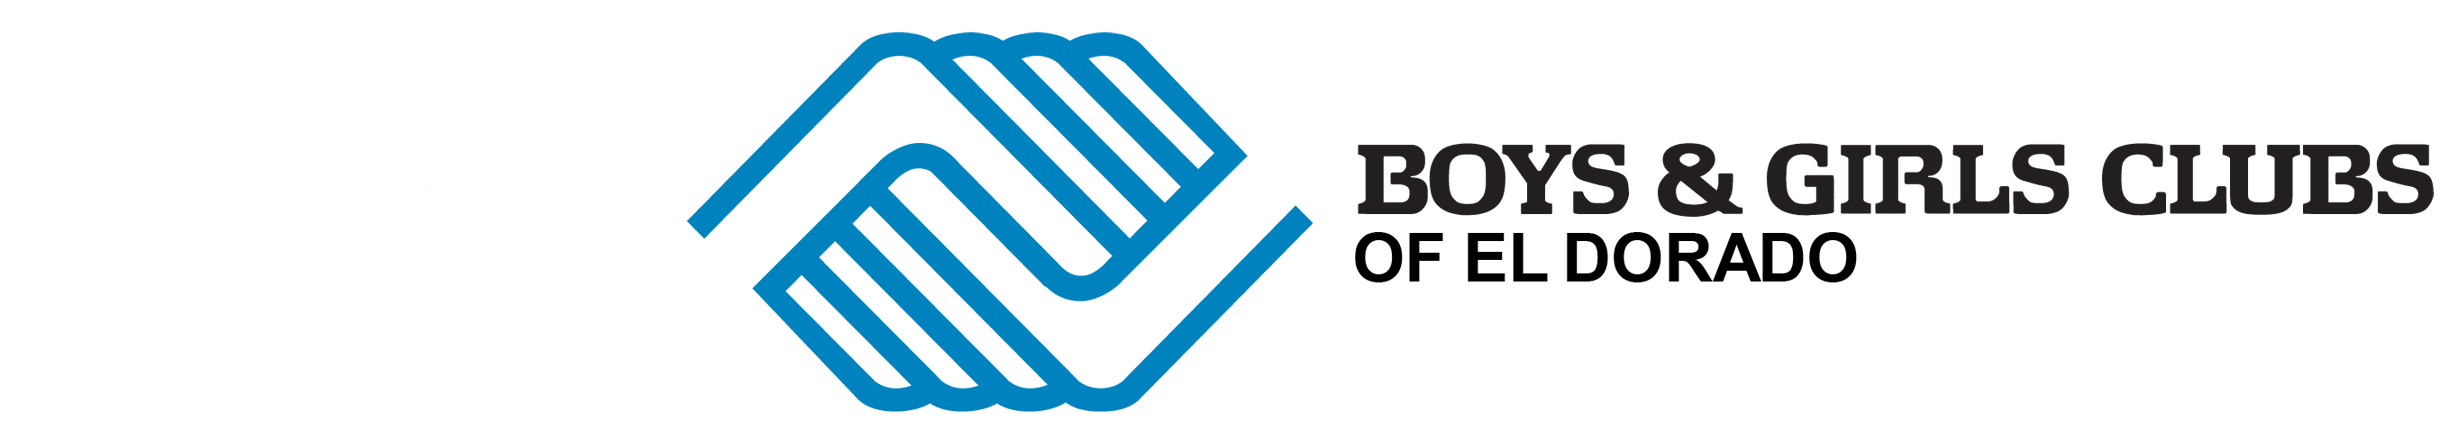 Boys & Girls Club of El Dorado, Arkansas